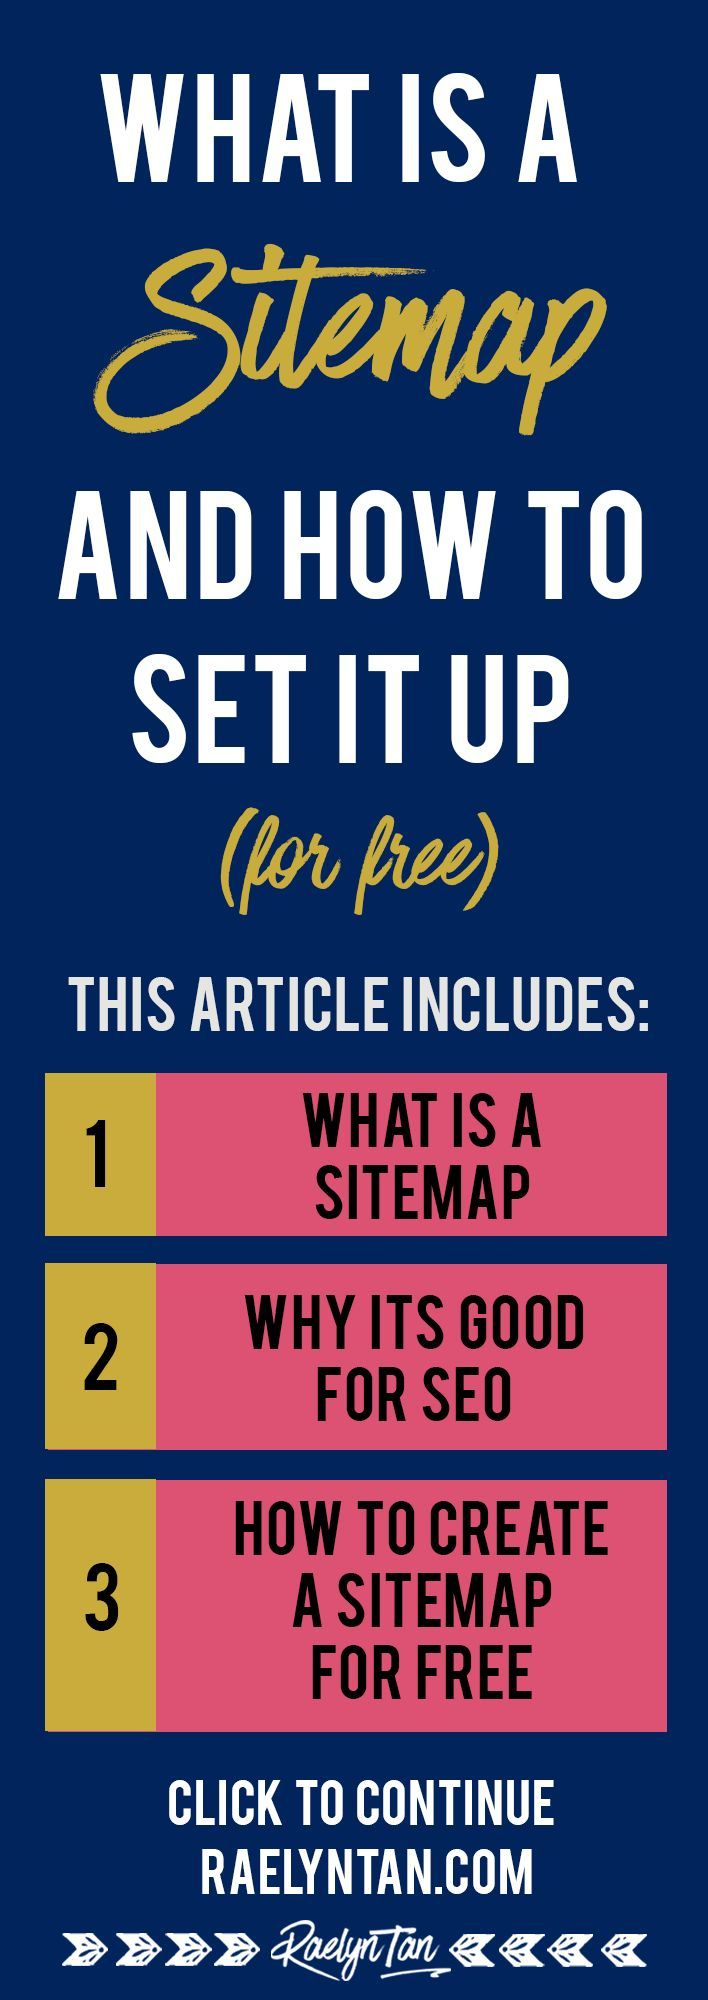 What is a sitemap? Great article on how to generate a simple website sitemap for your blog using free Sitemap generators!